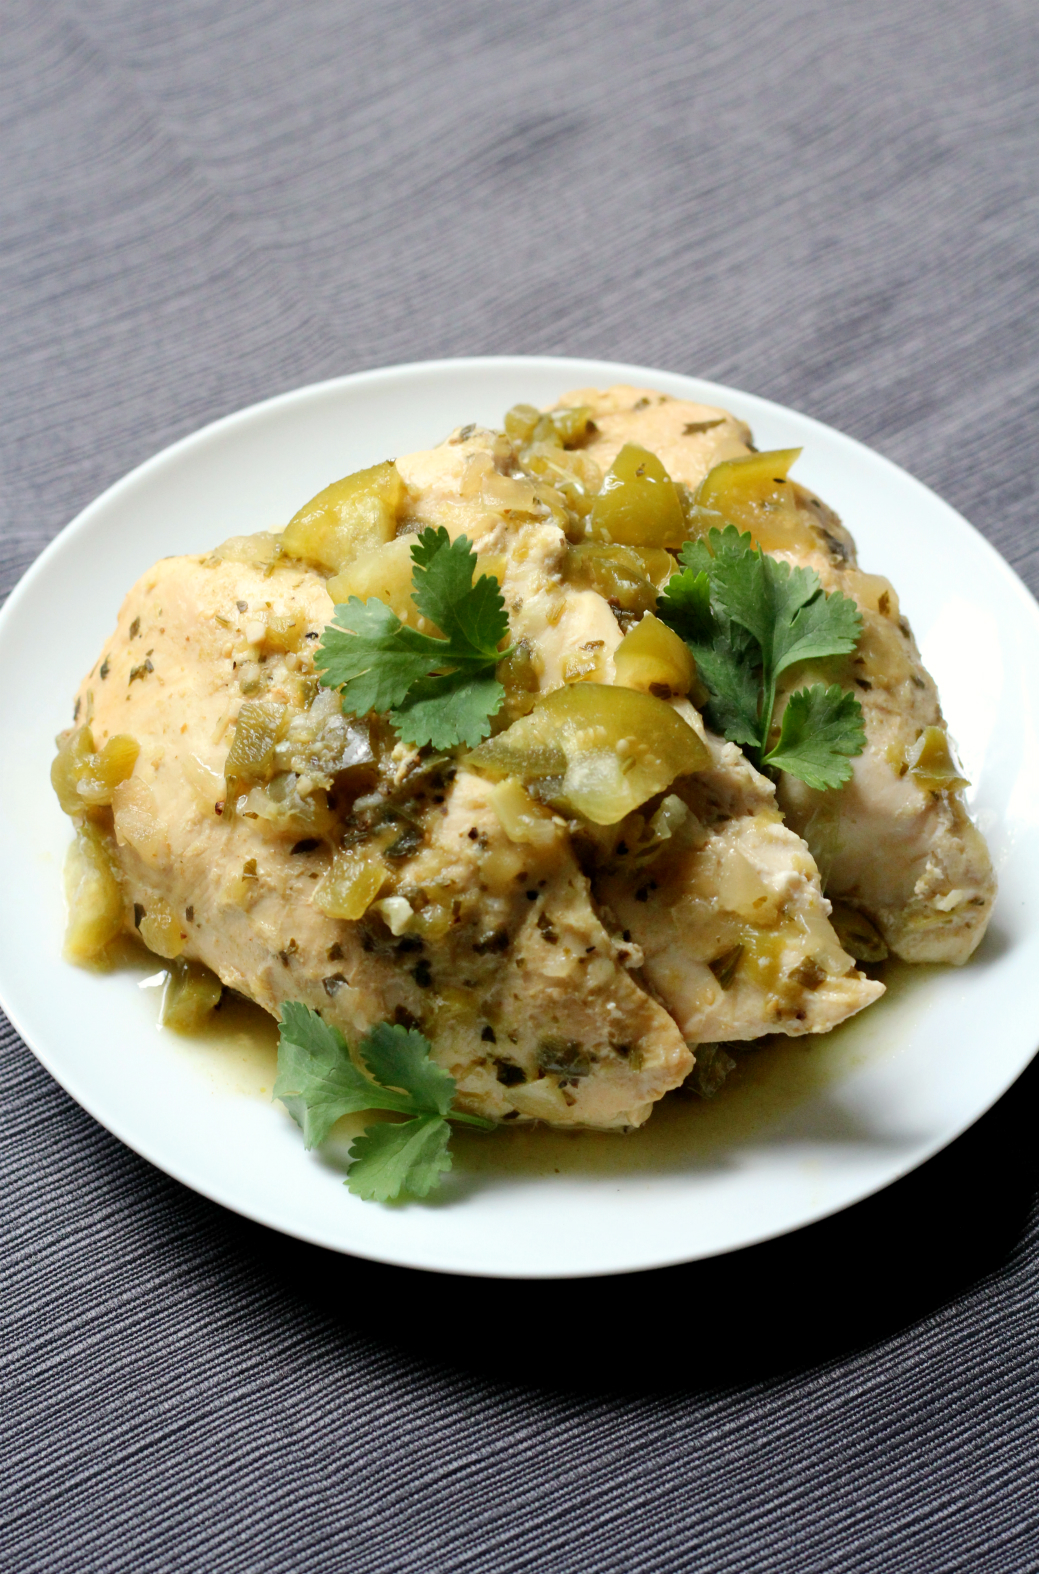 Slow Cooker Salsa Verde Chicken | Strength and Sunshine @RebeccaGF666 The classic green sauce, salsa verde with tomatillos, is the perfect addition to a simple slow cooker salsa verde chicken recipe for any easy and healthy weeknight dinner. Gluten-free, paleo, and full of flavor!